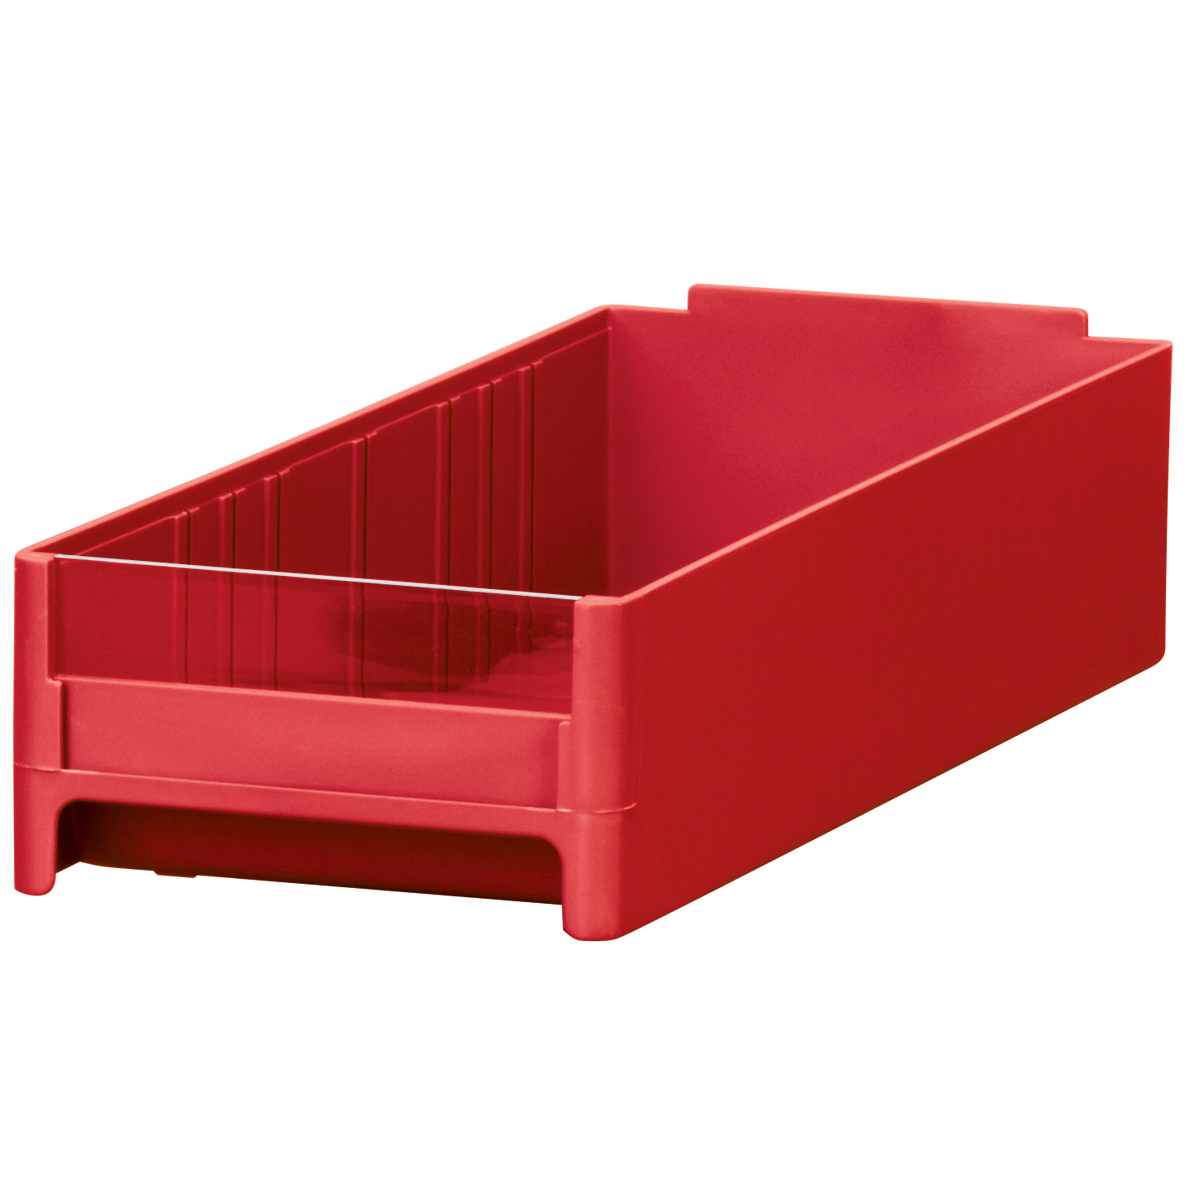 19-Series Cabinet Drawer 4 x 2-1/16 x 10-9/16, Red.  This item sold in carton quantities of 32.